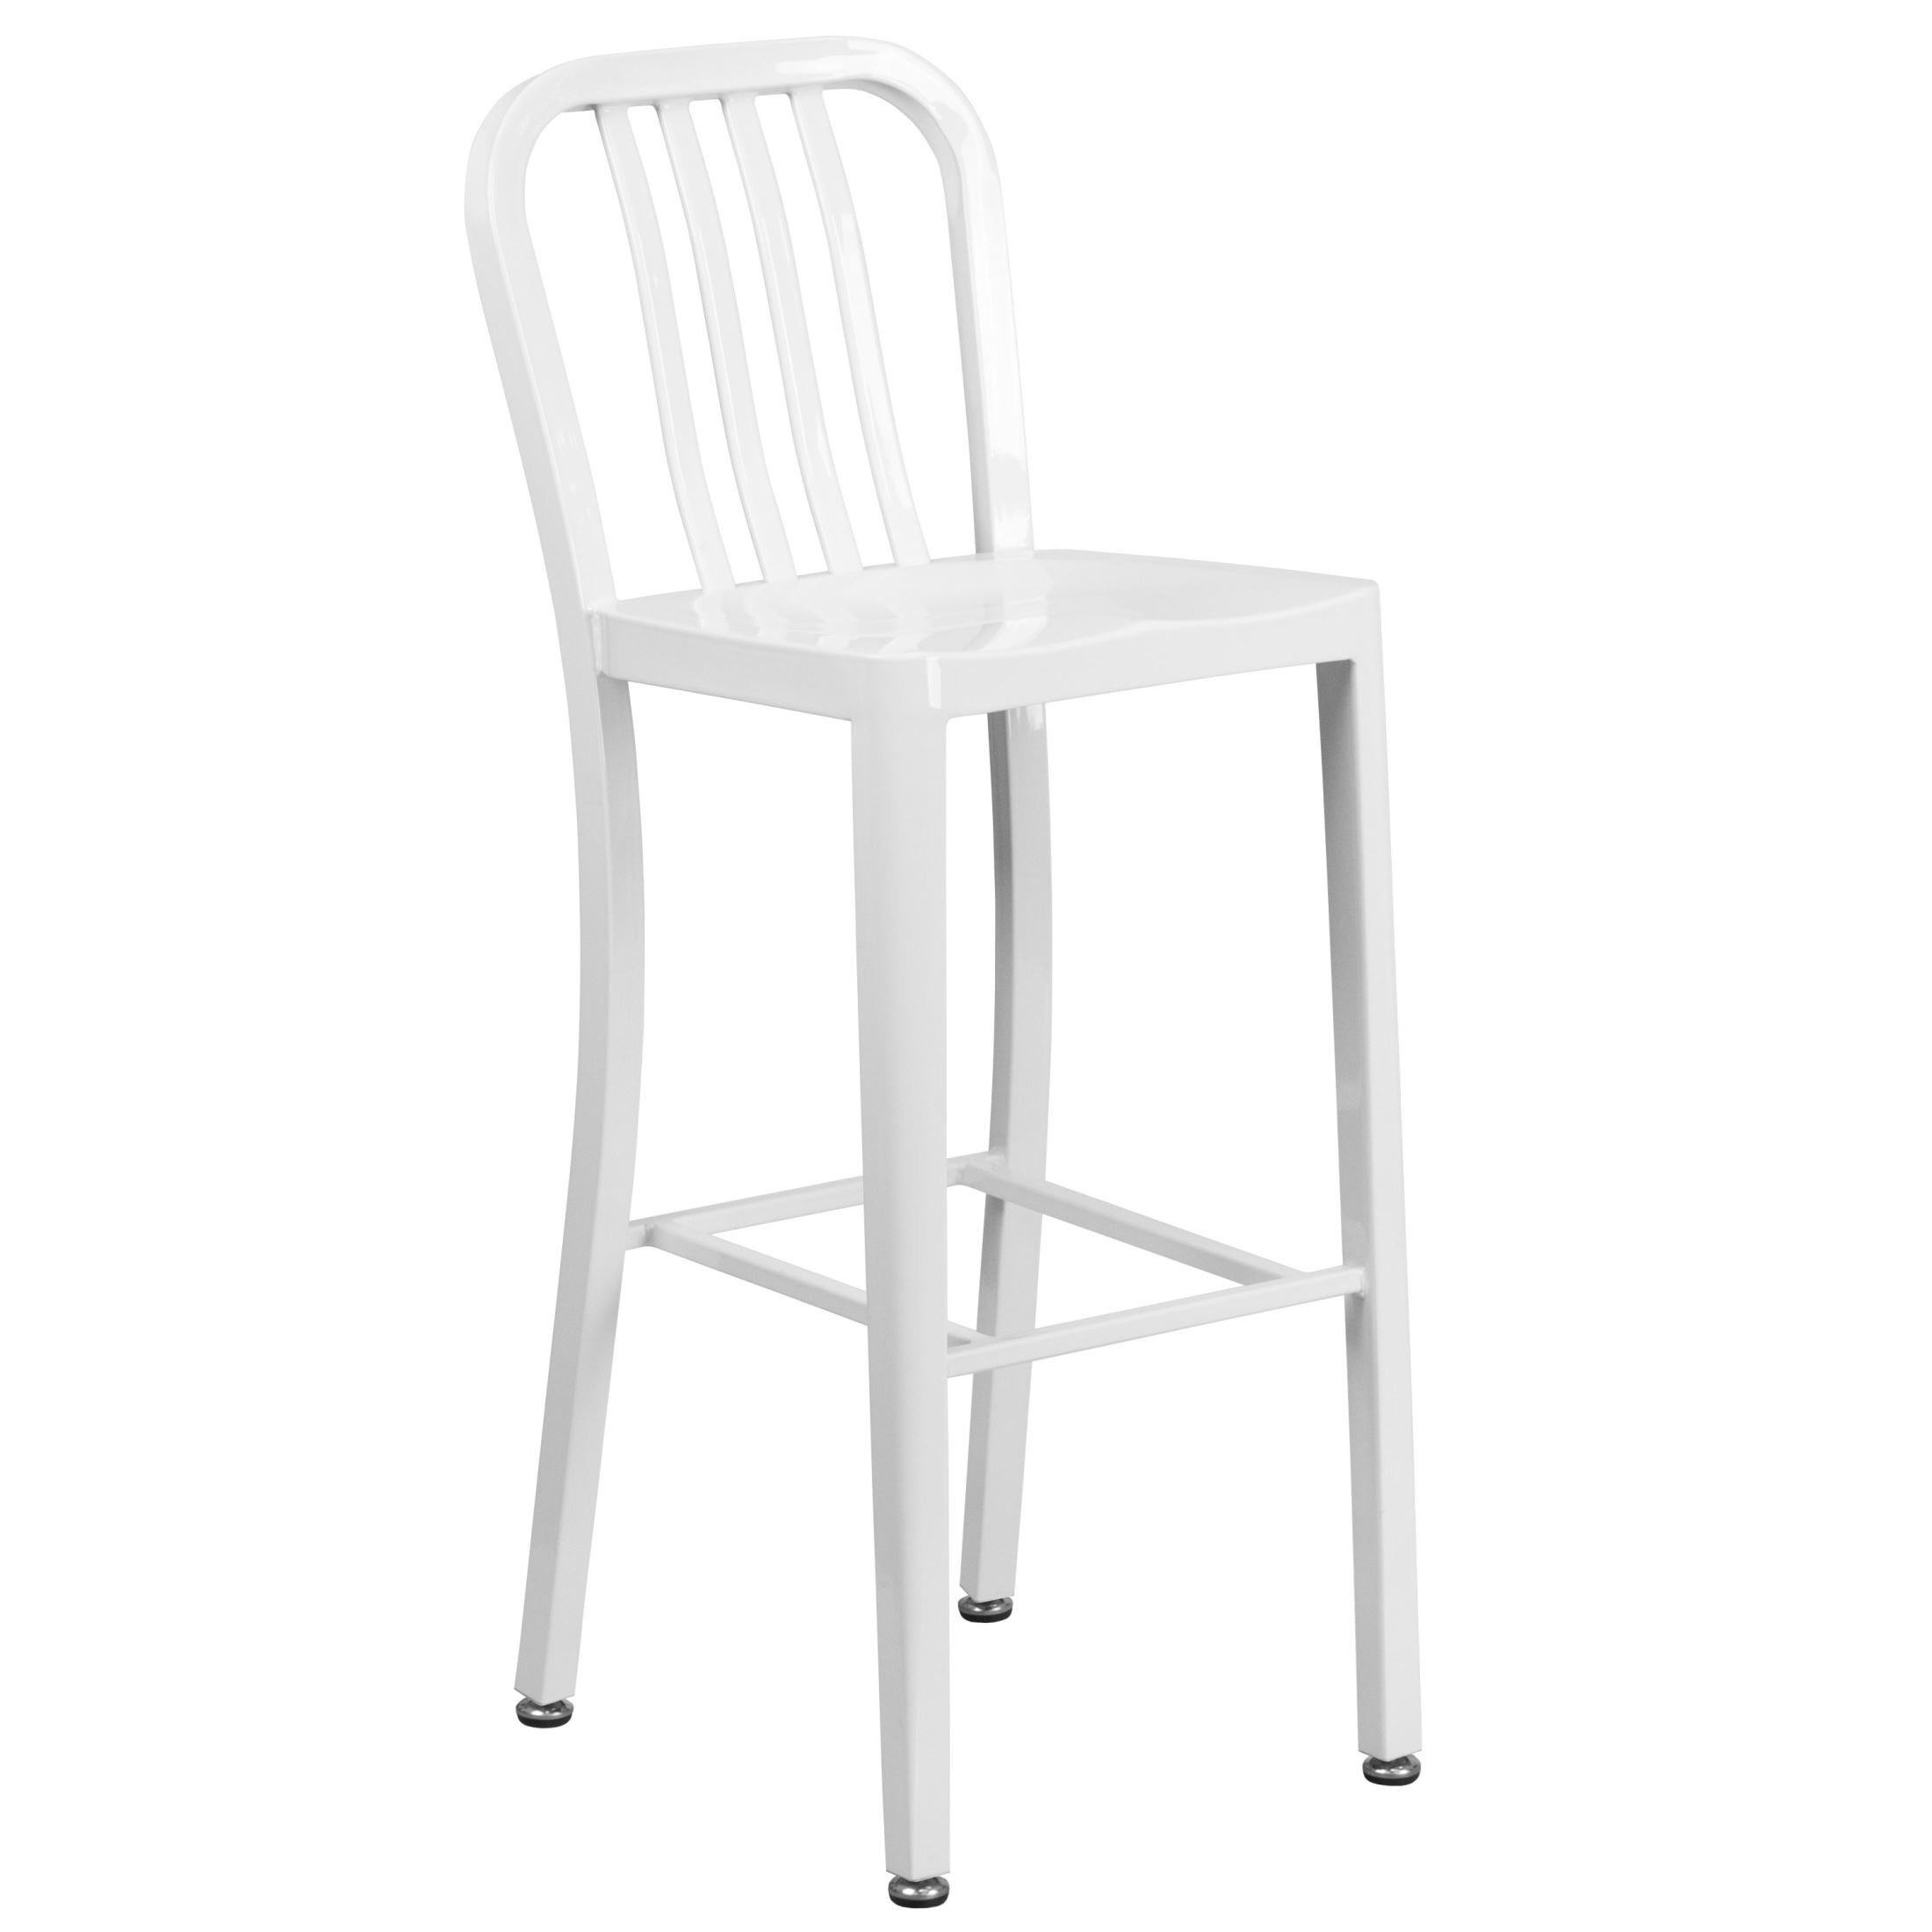 Modern Style 30inch High White Indoor Outdoor Bar Stool